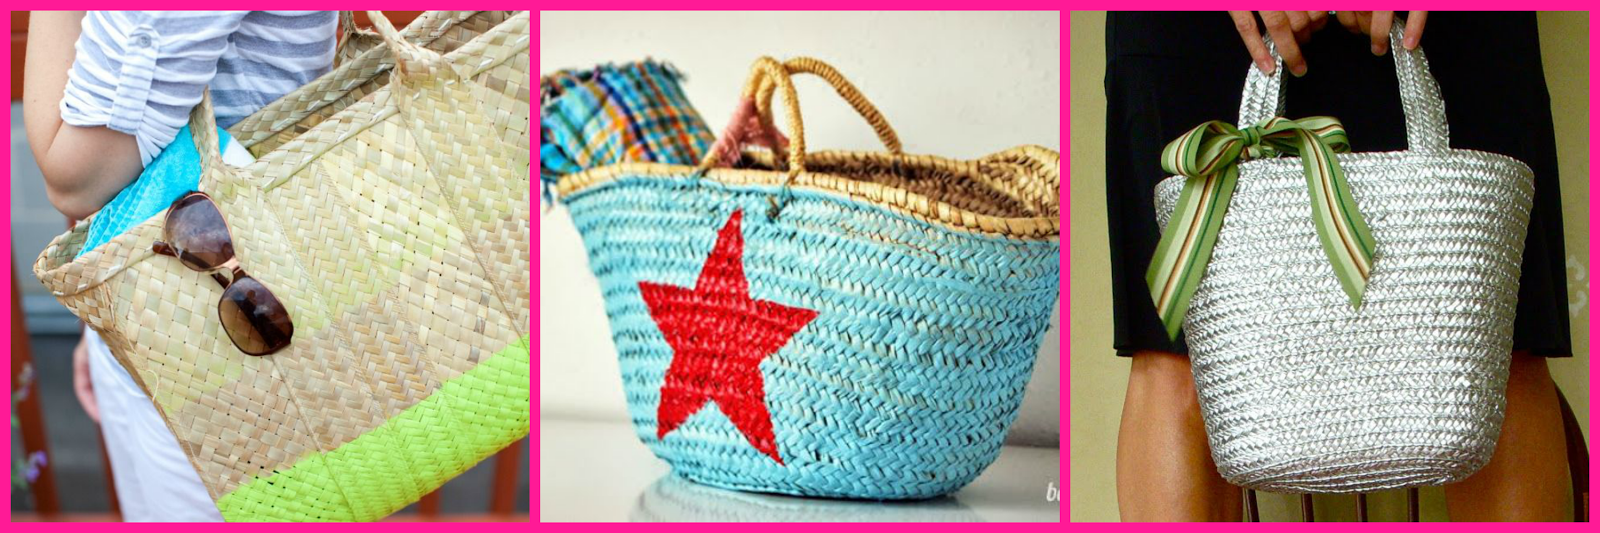 SPRAY PAINT STRAW BAG/CAPAZOS PINTURA SPRAY DIY